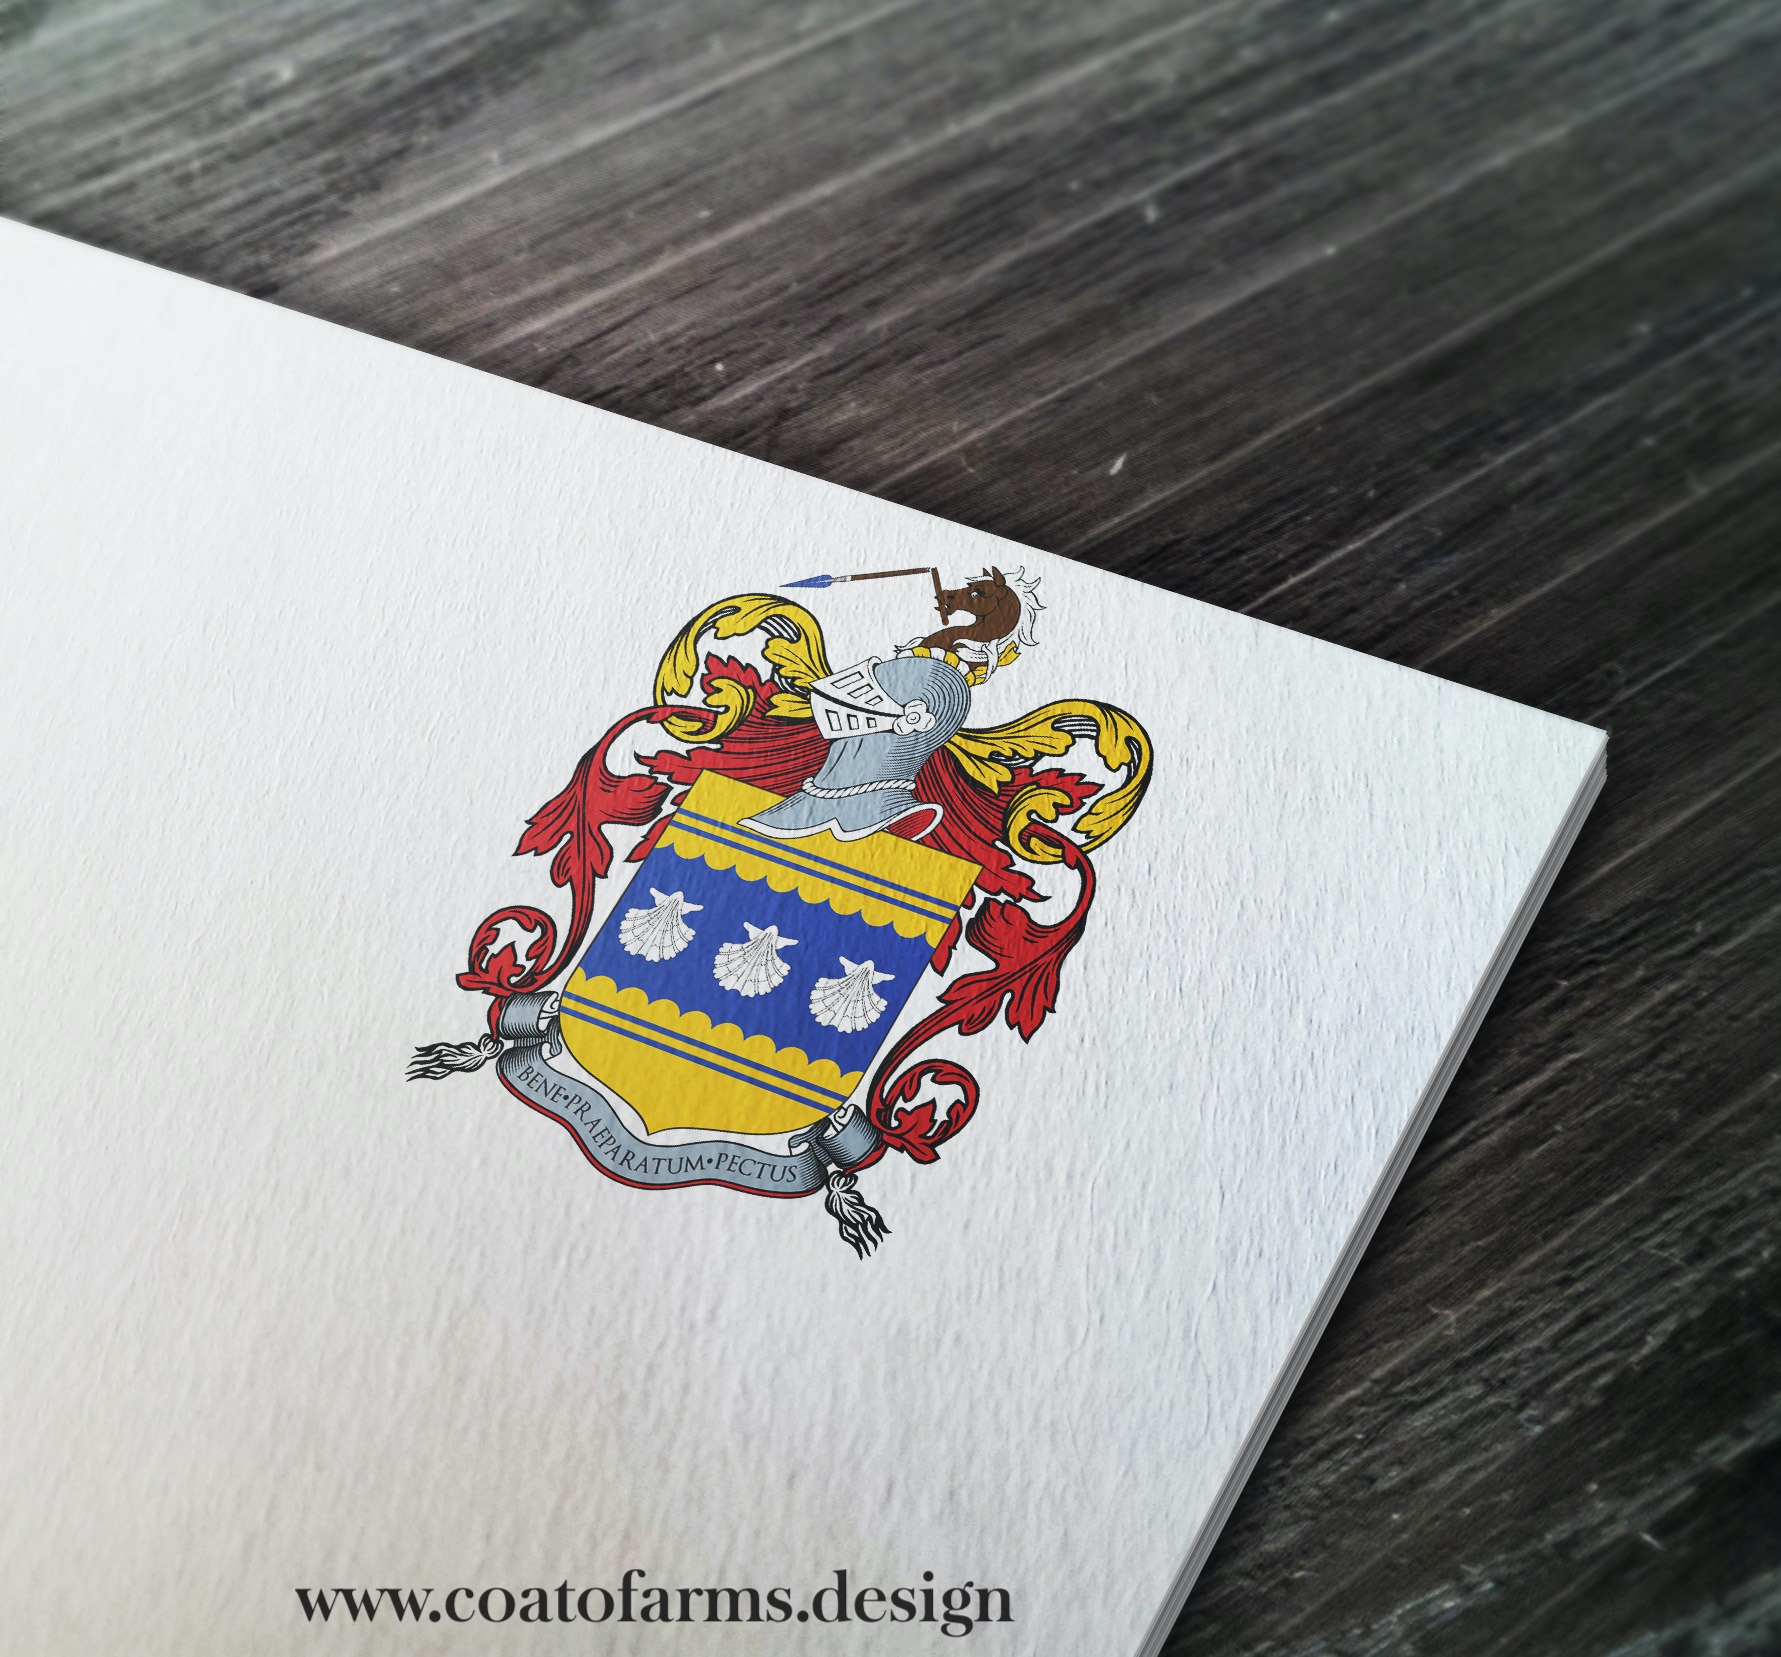 Coat of arms I designed for a family from the USA, based on the their sketch